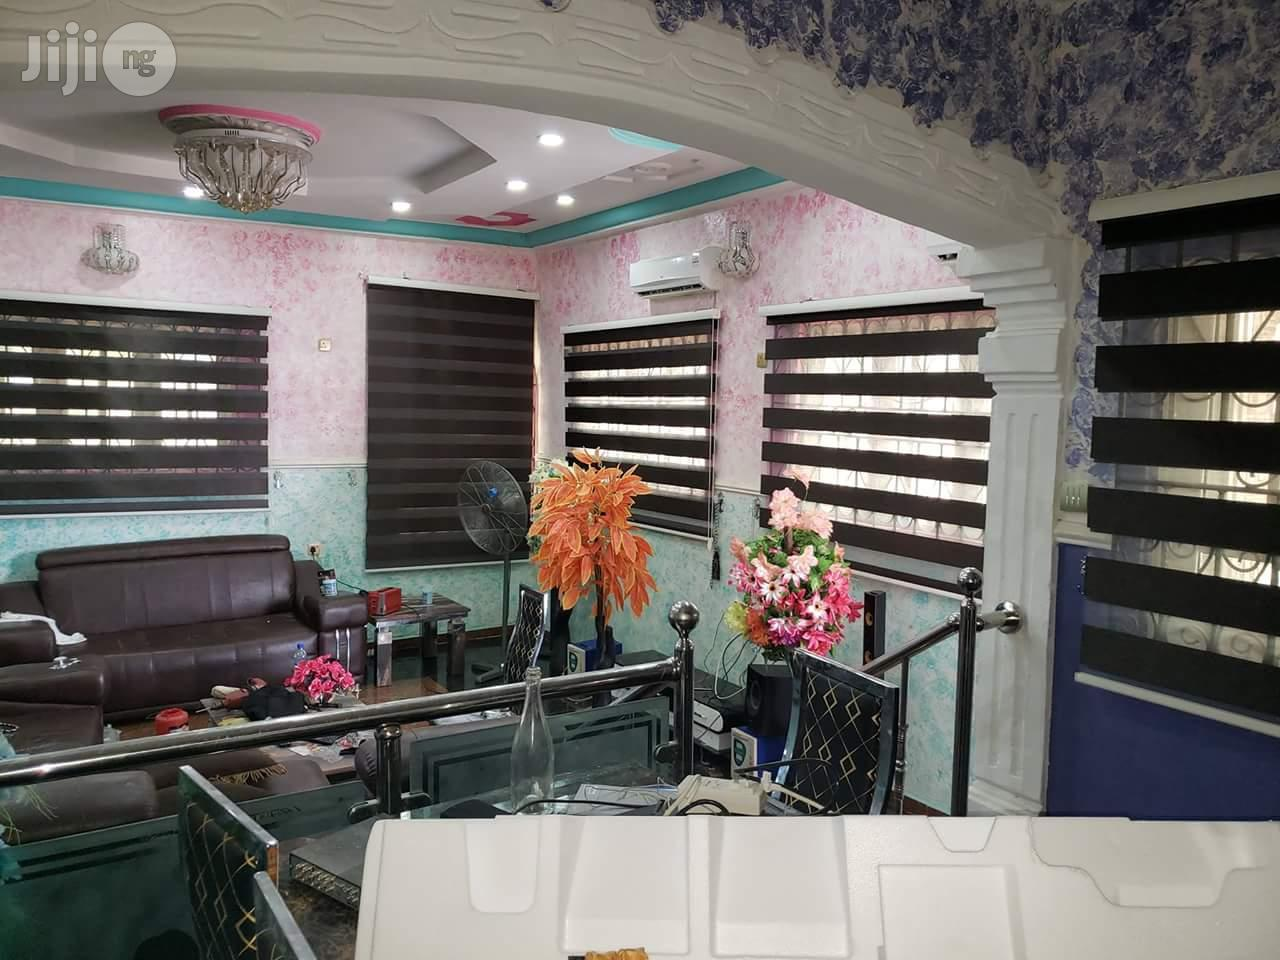 Window Blind | Home Accessories for sale in Apapa, Lagos State, Nigeria